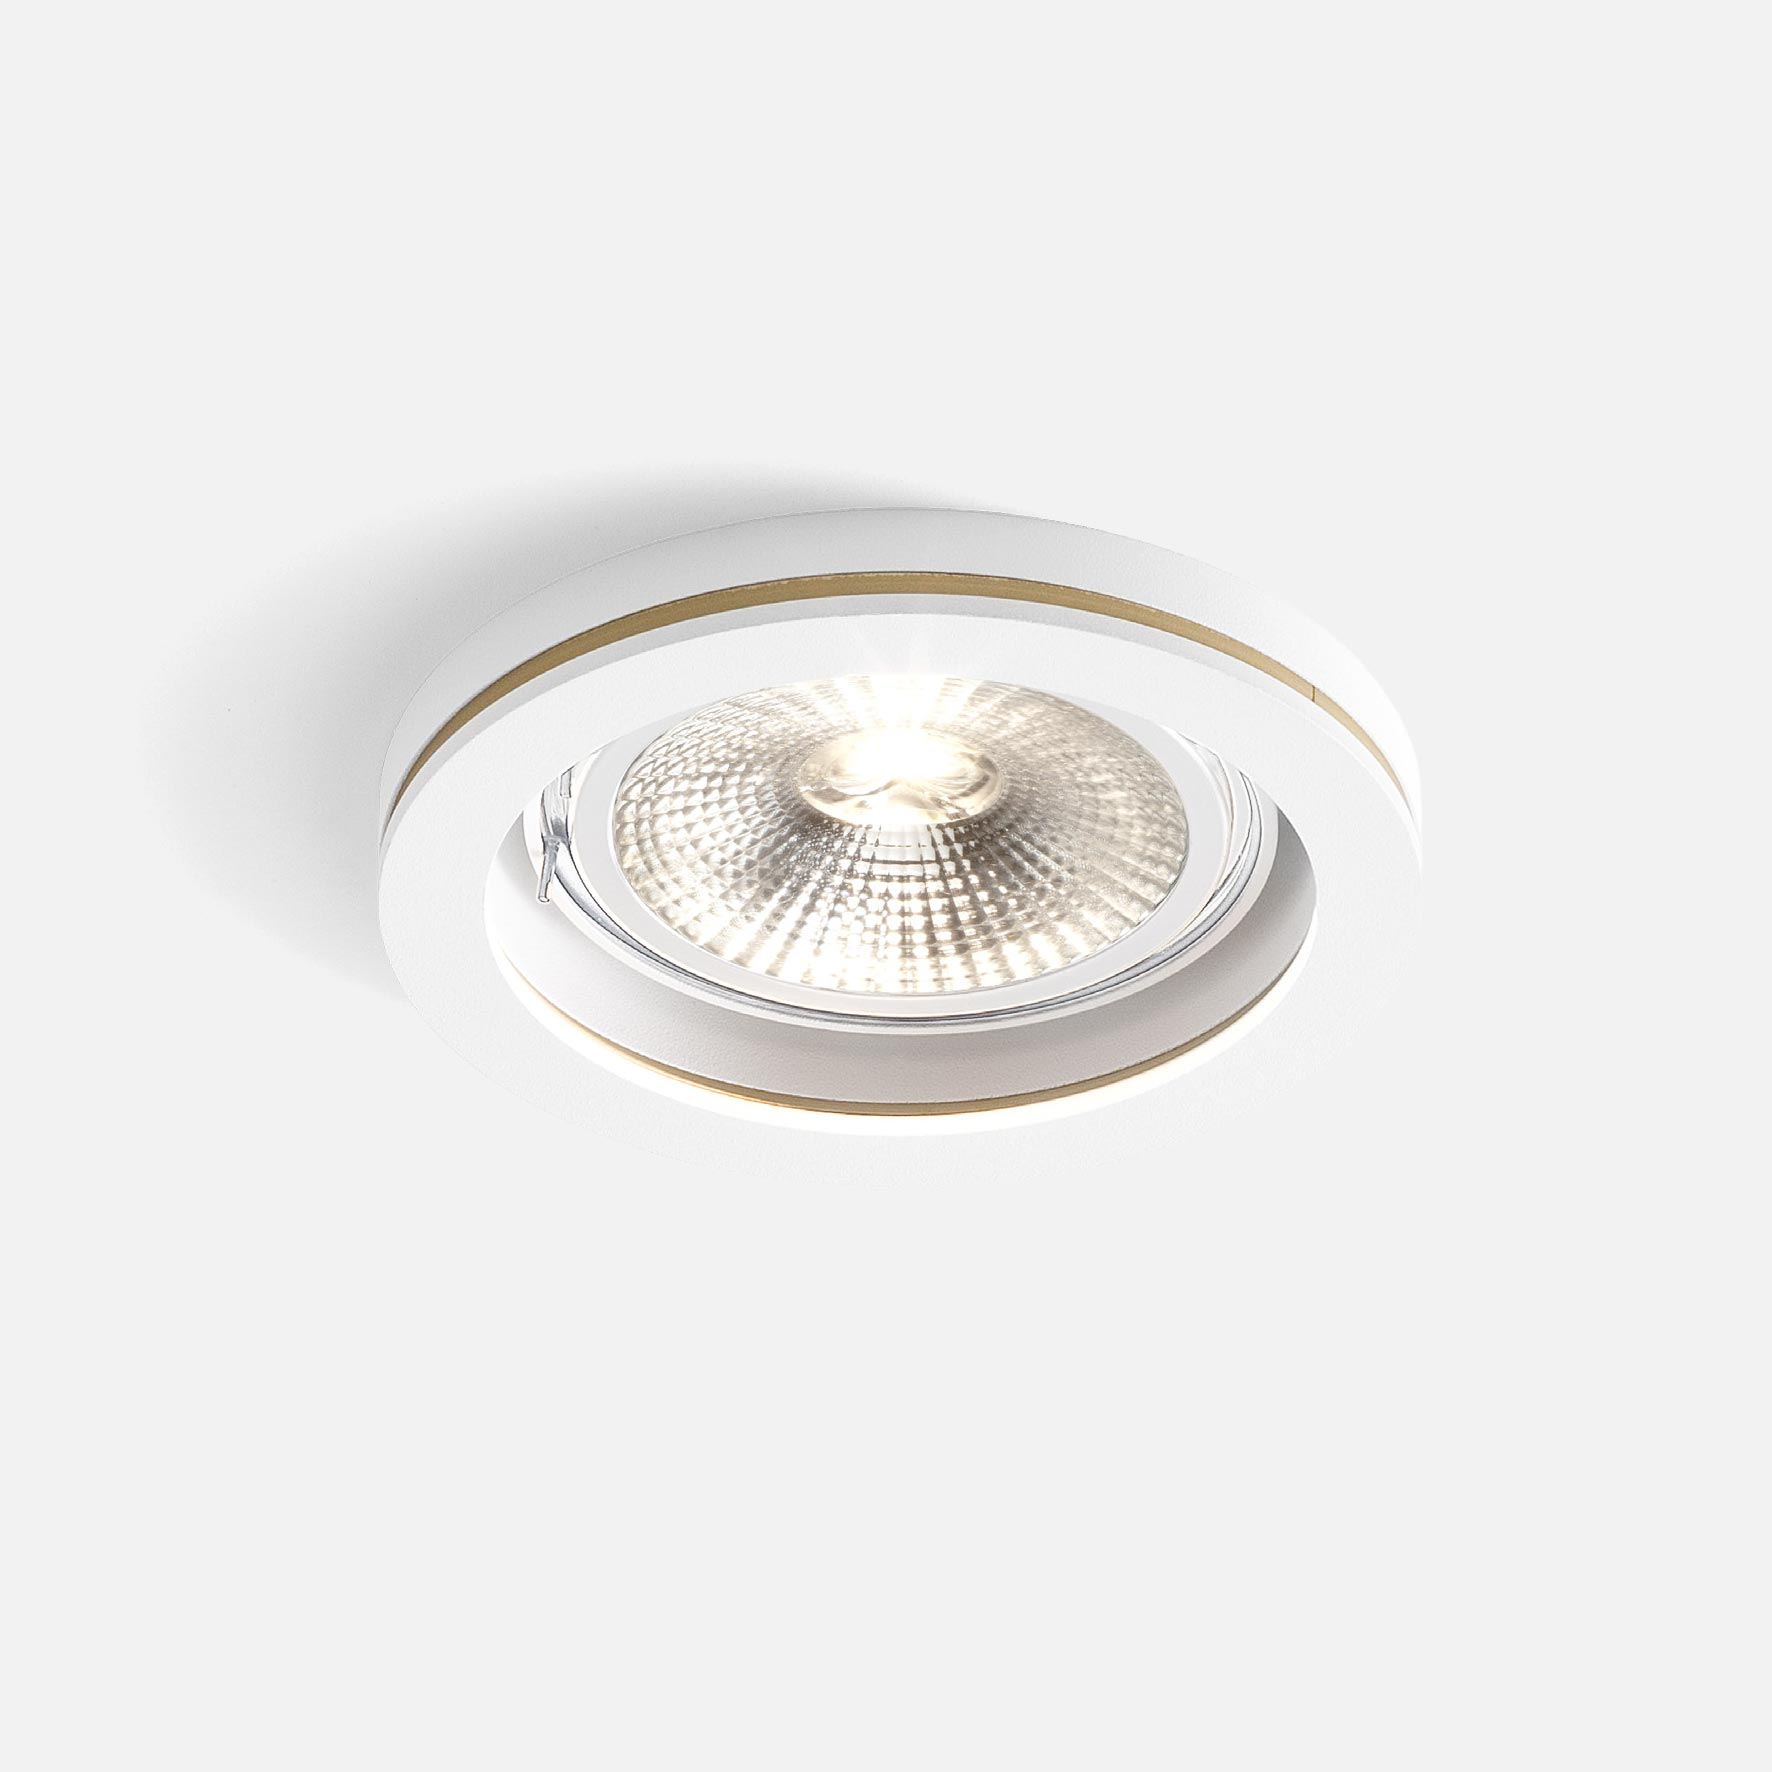 Cocoz round 1.0 led111 white texture gold 2700k